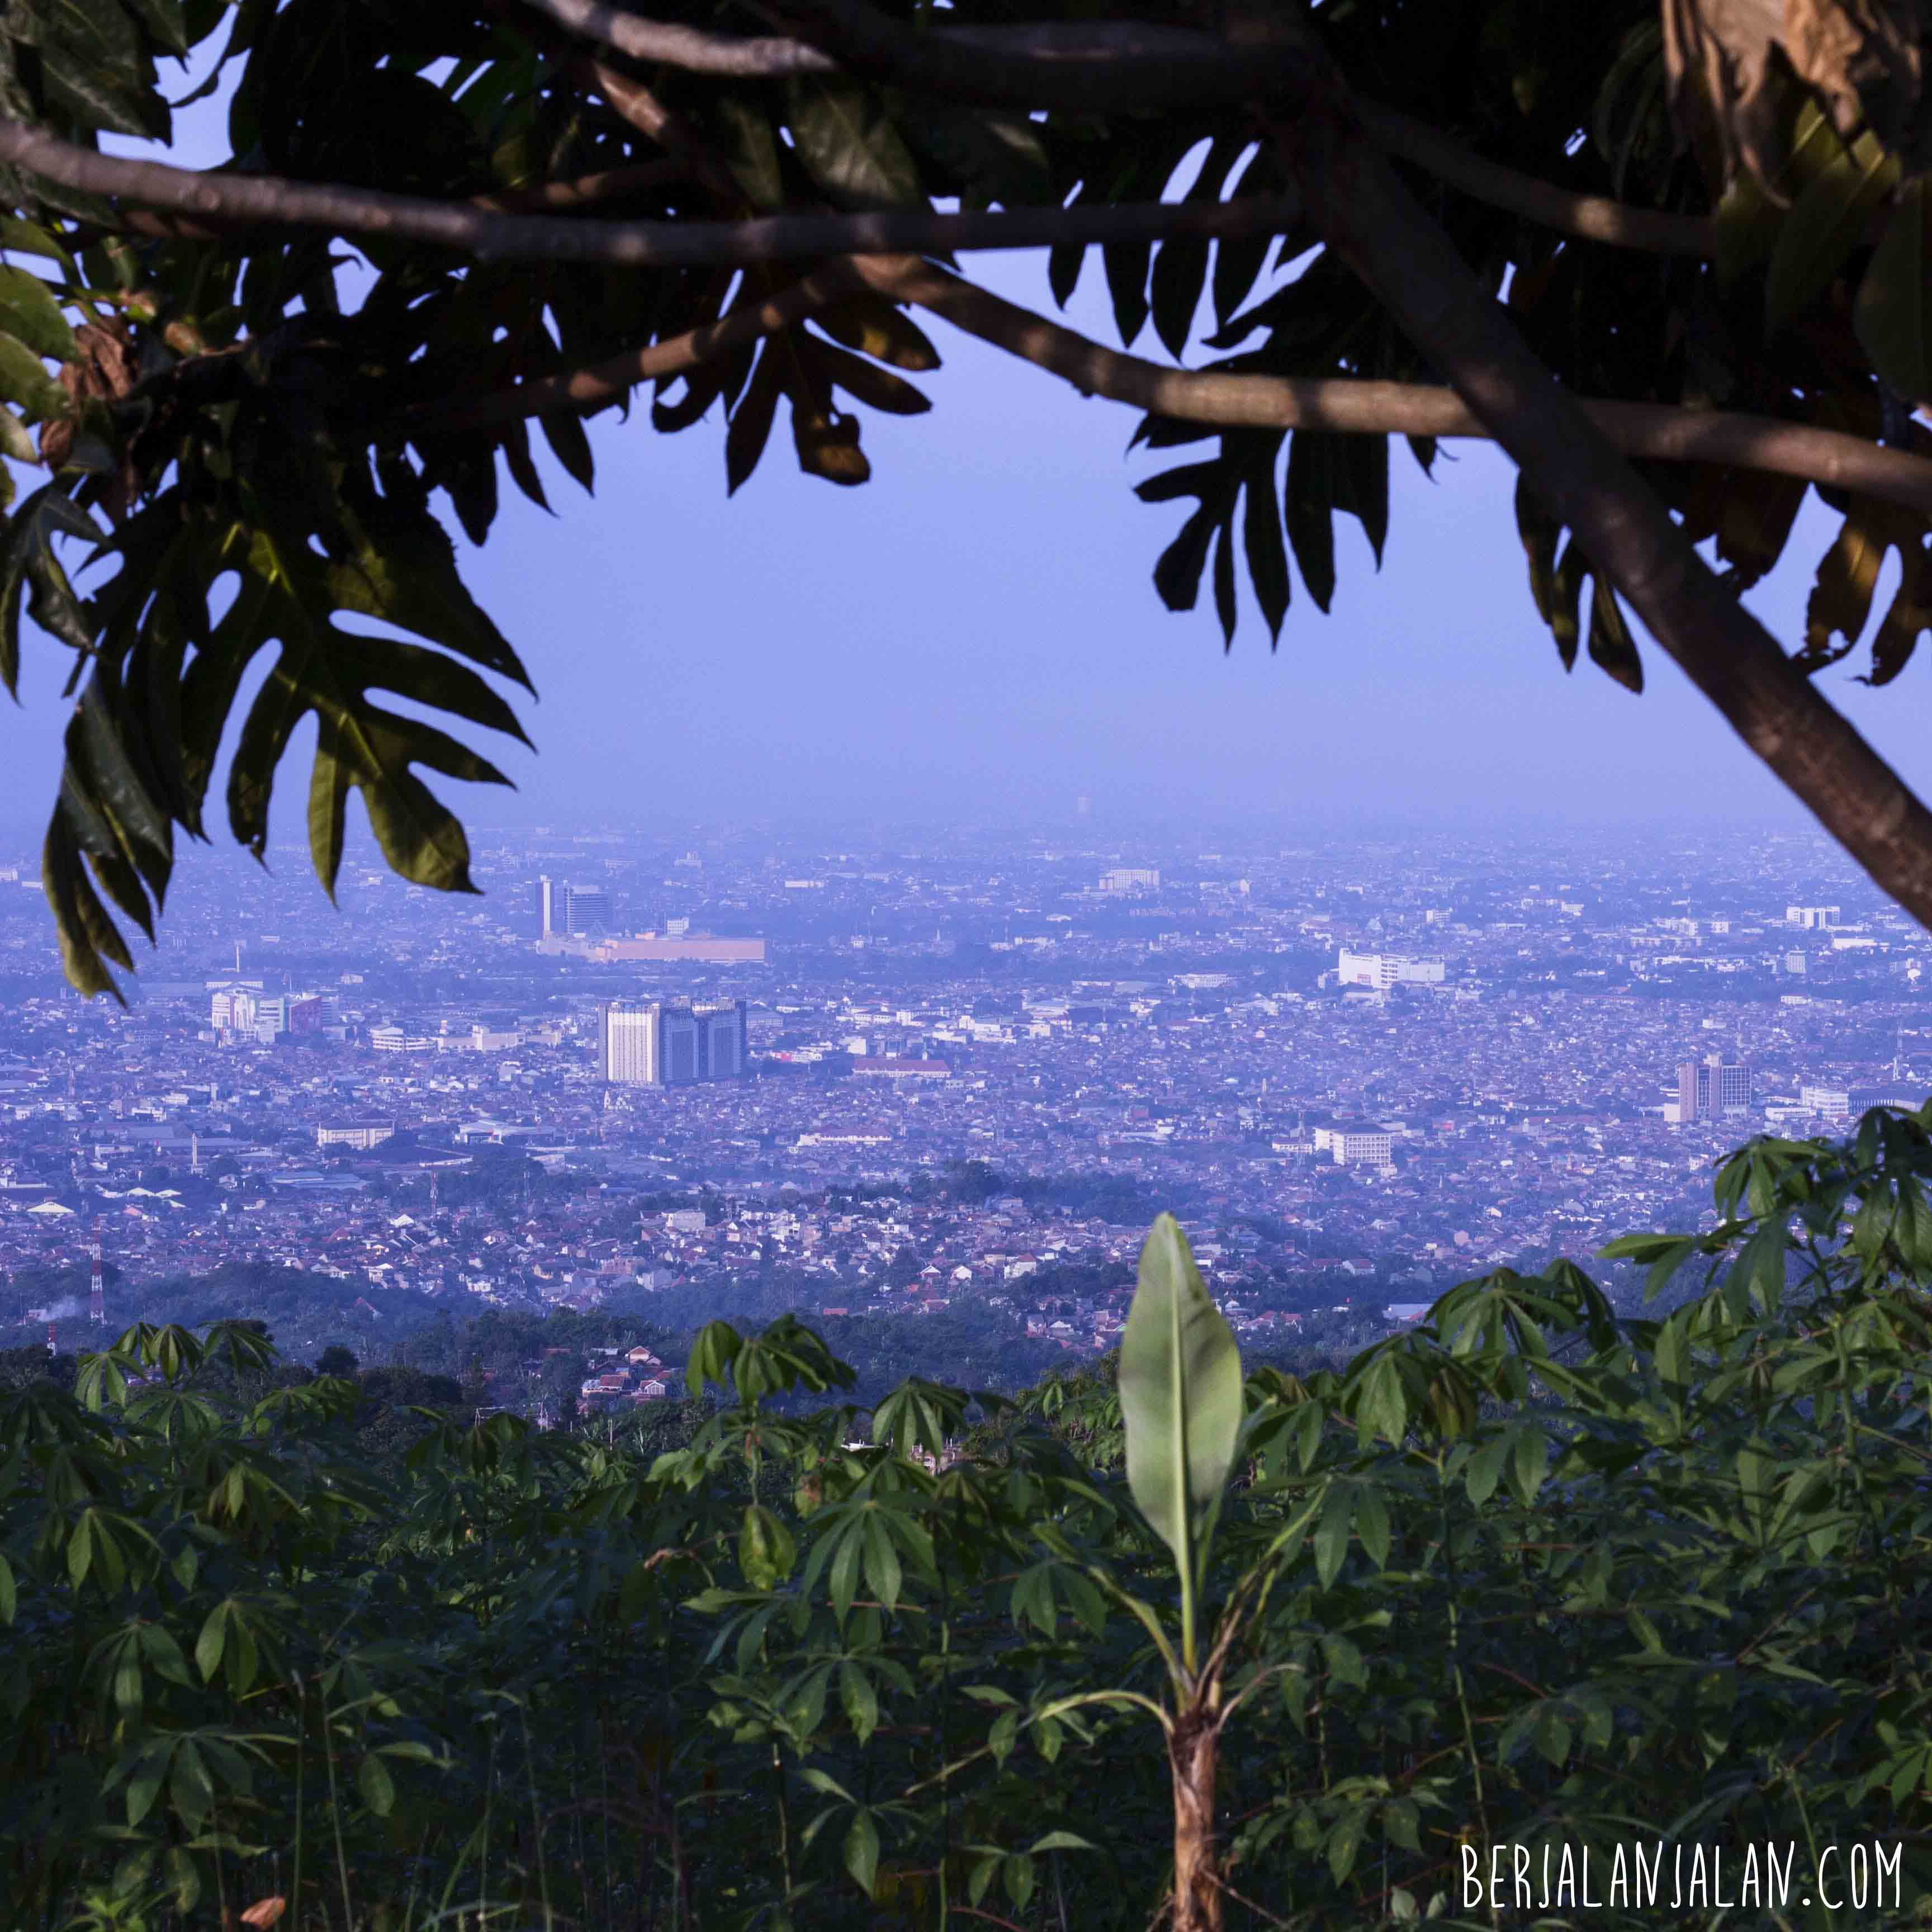 cityscape, city, bandung, west java, wonderful indonesia, to bandung, framing, landscape, caringin